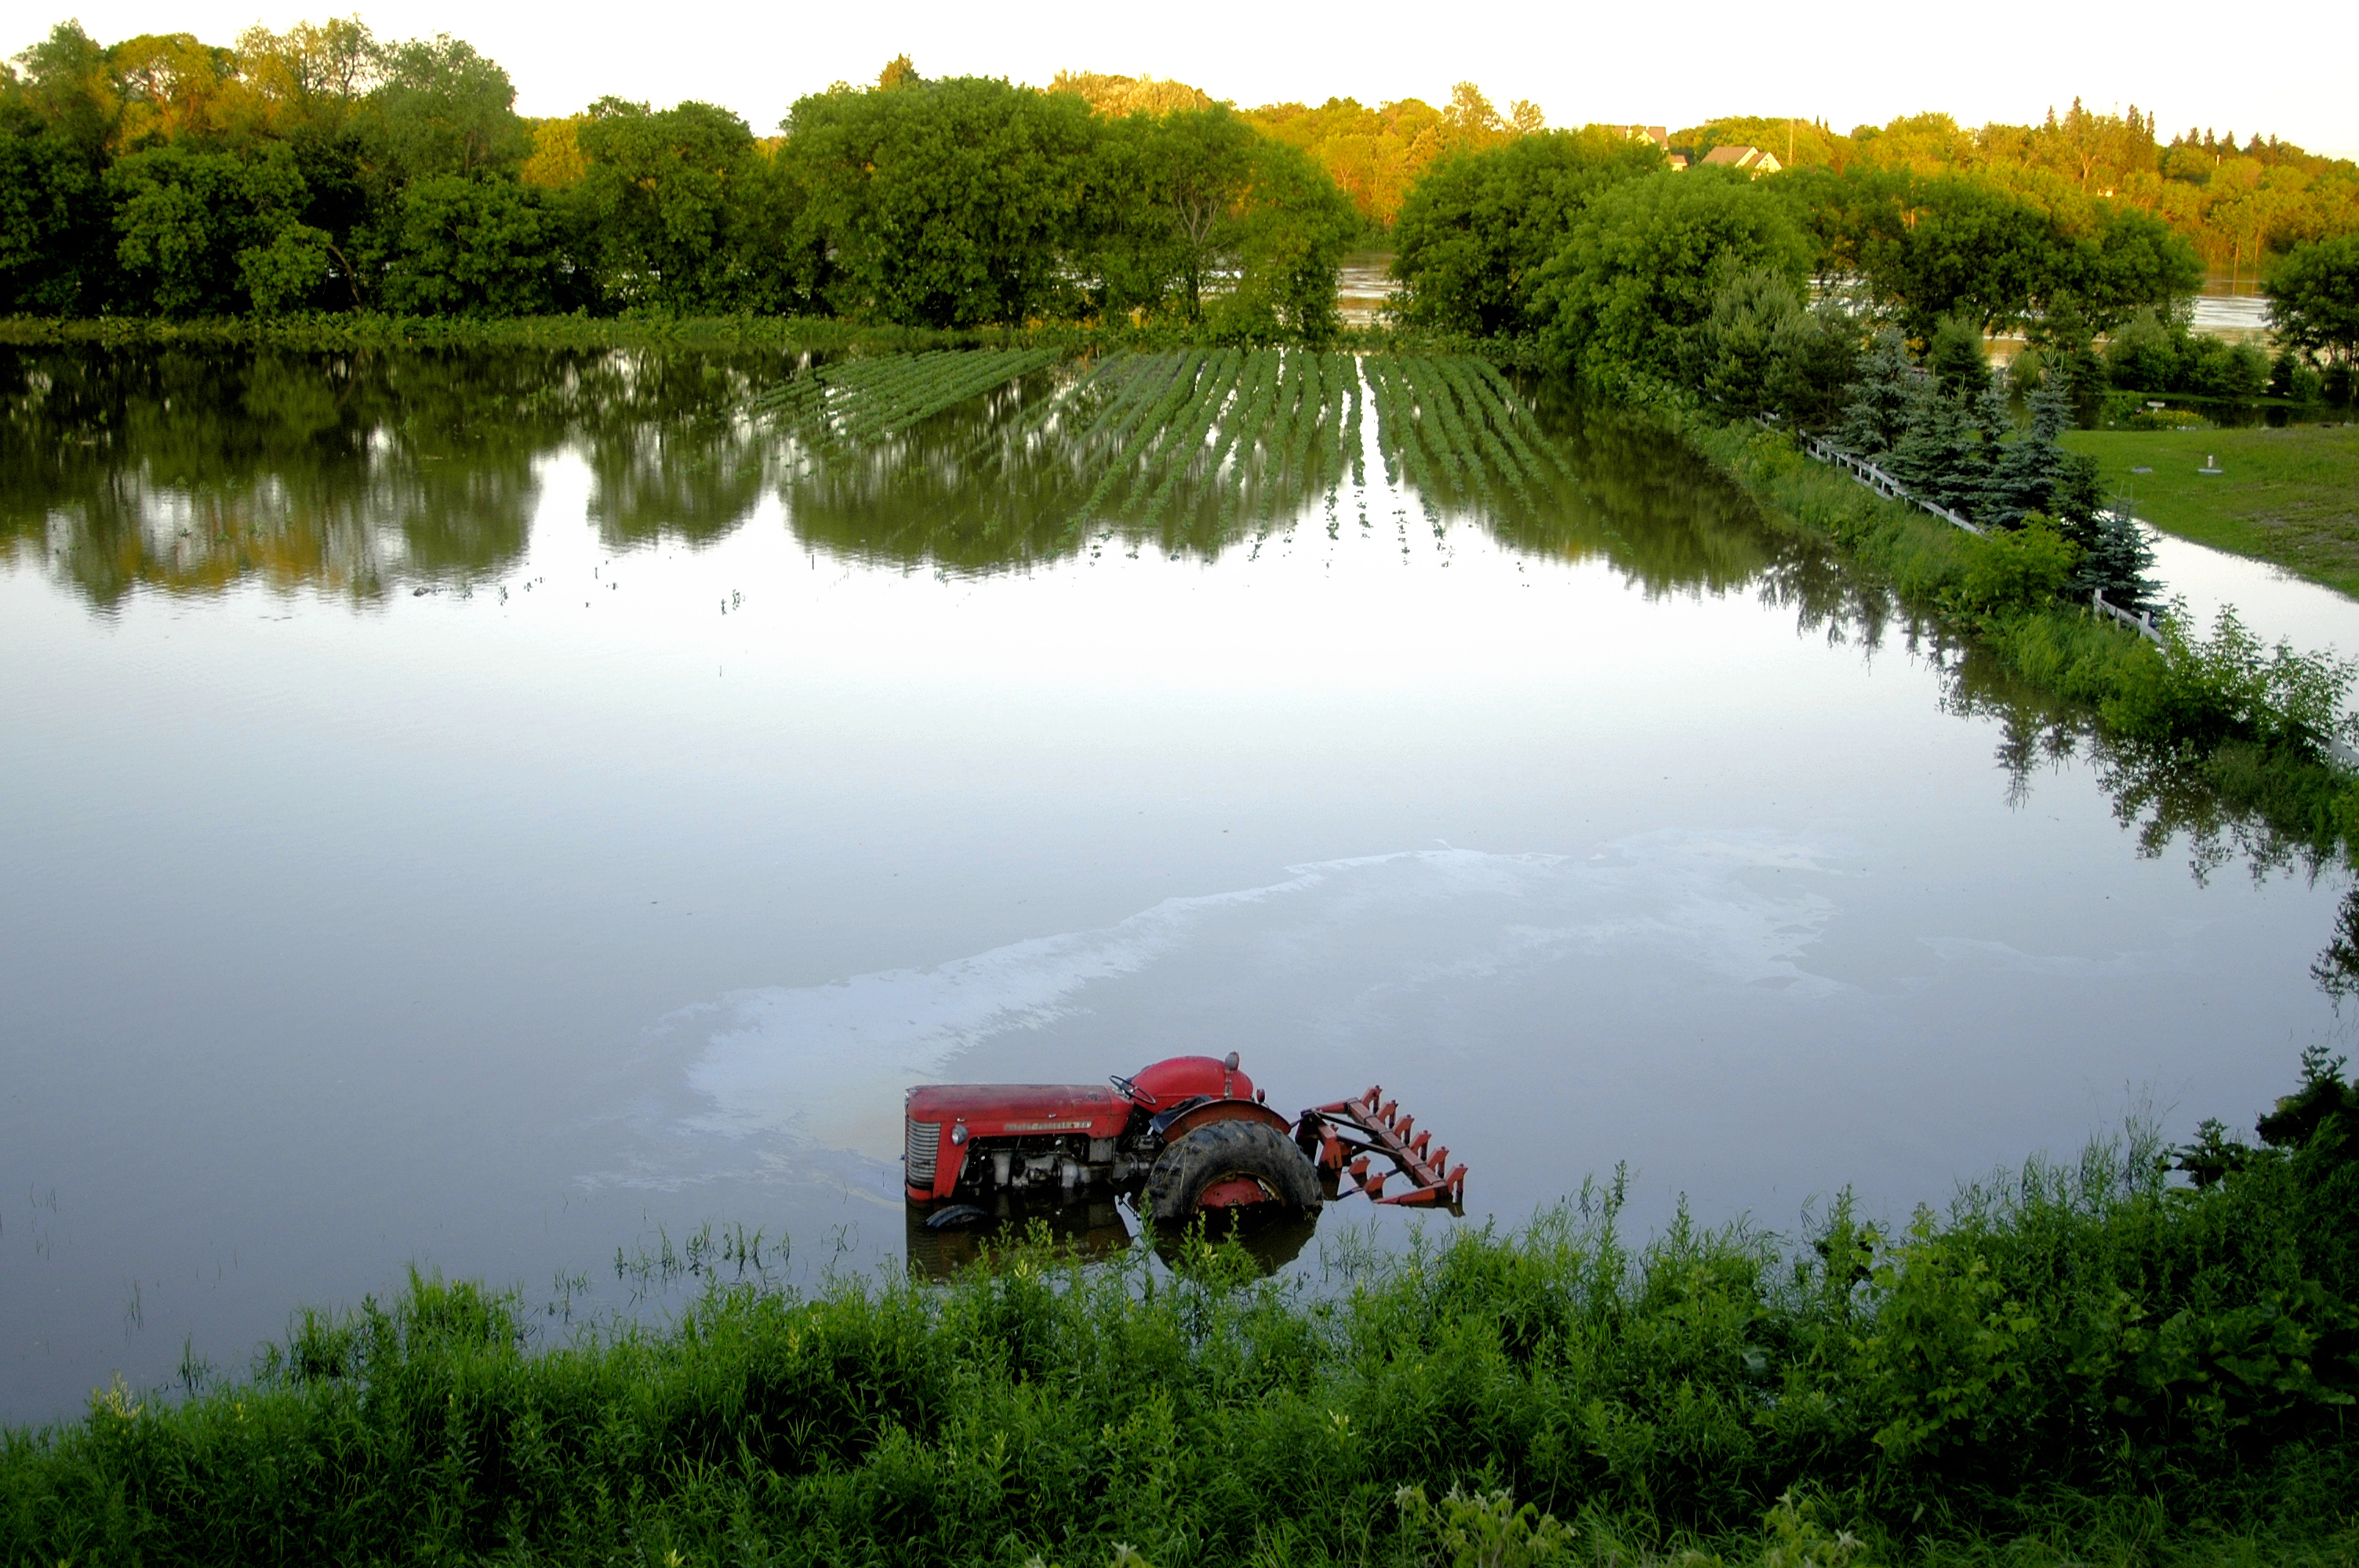 A tractor flooded in the field